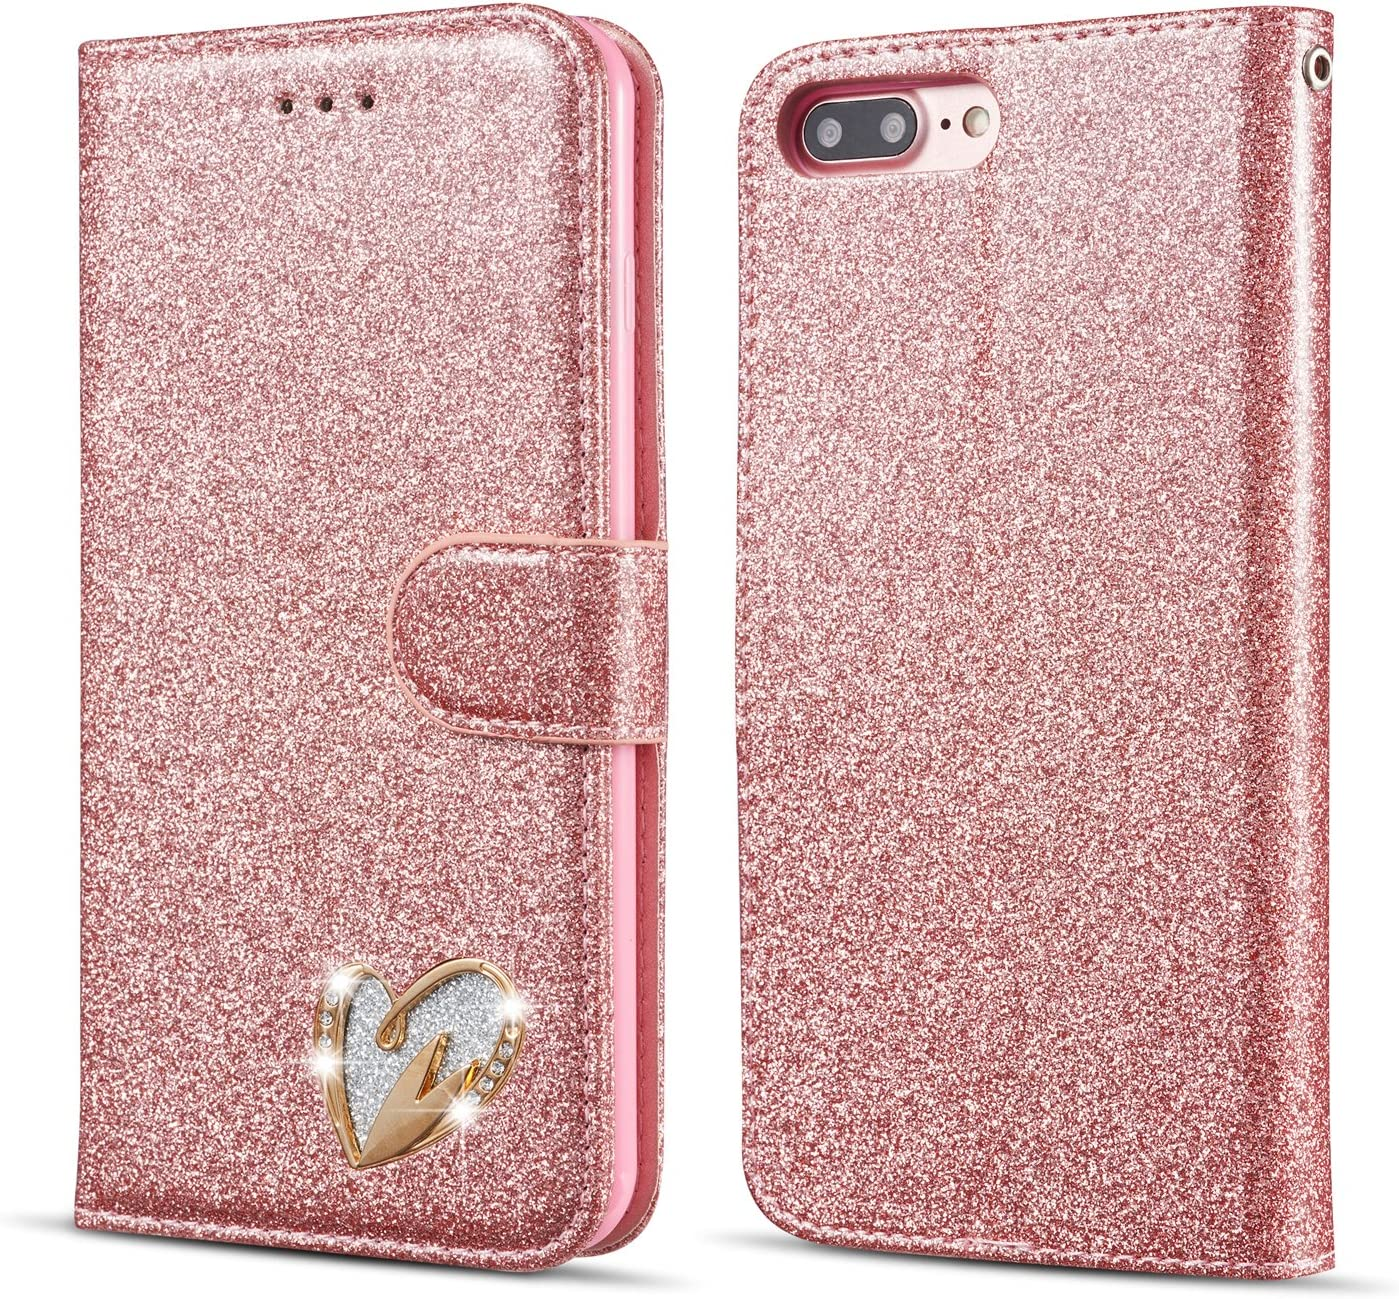 QLTYPRI iPhone 6 Plus Case iPhone 6S Plus Case Wallet Case Bling Shiny Glitter Flip Folio Case Full-Body Protective Cover Card Slots Magnetic Closure Kickstand Wrist Strap for Women Girls - Rose Gold